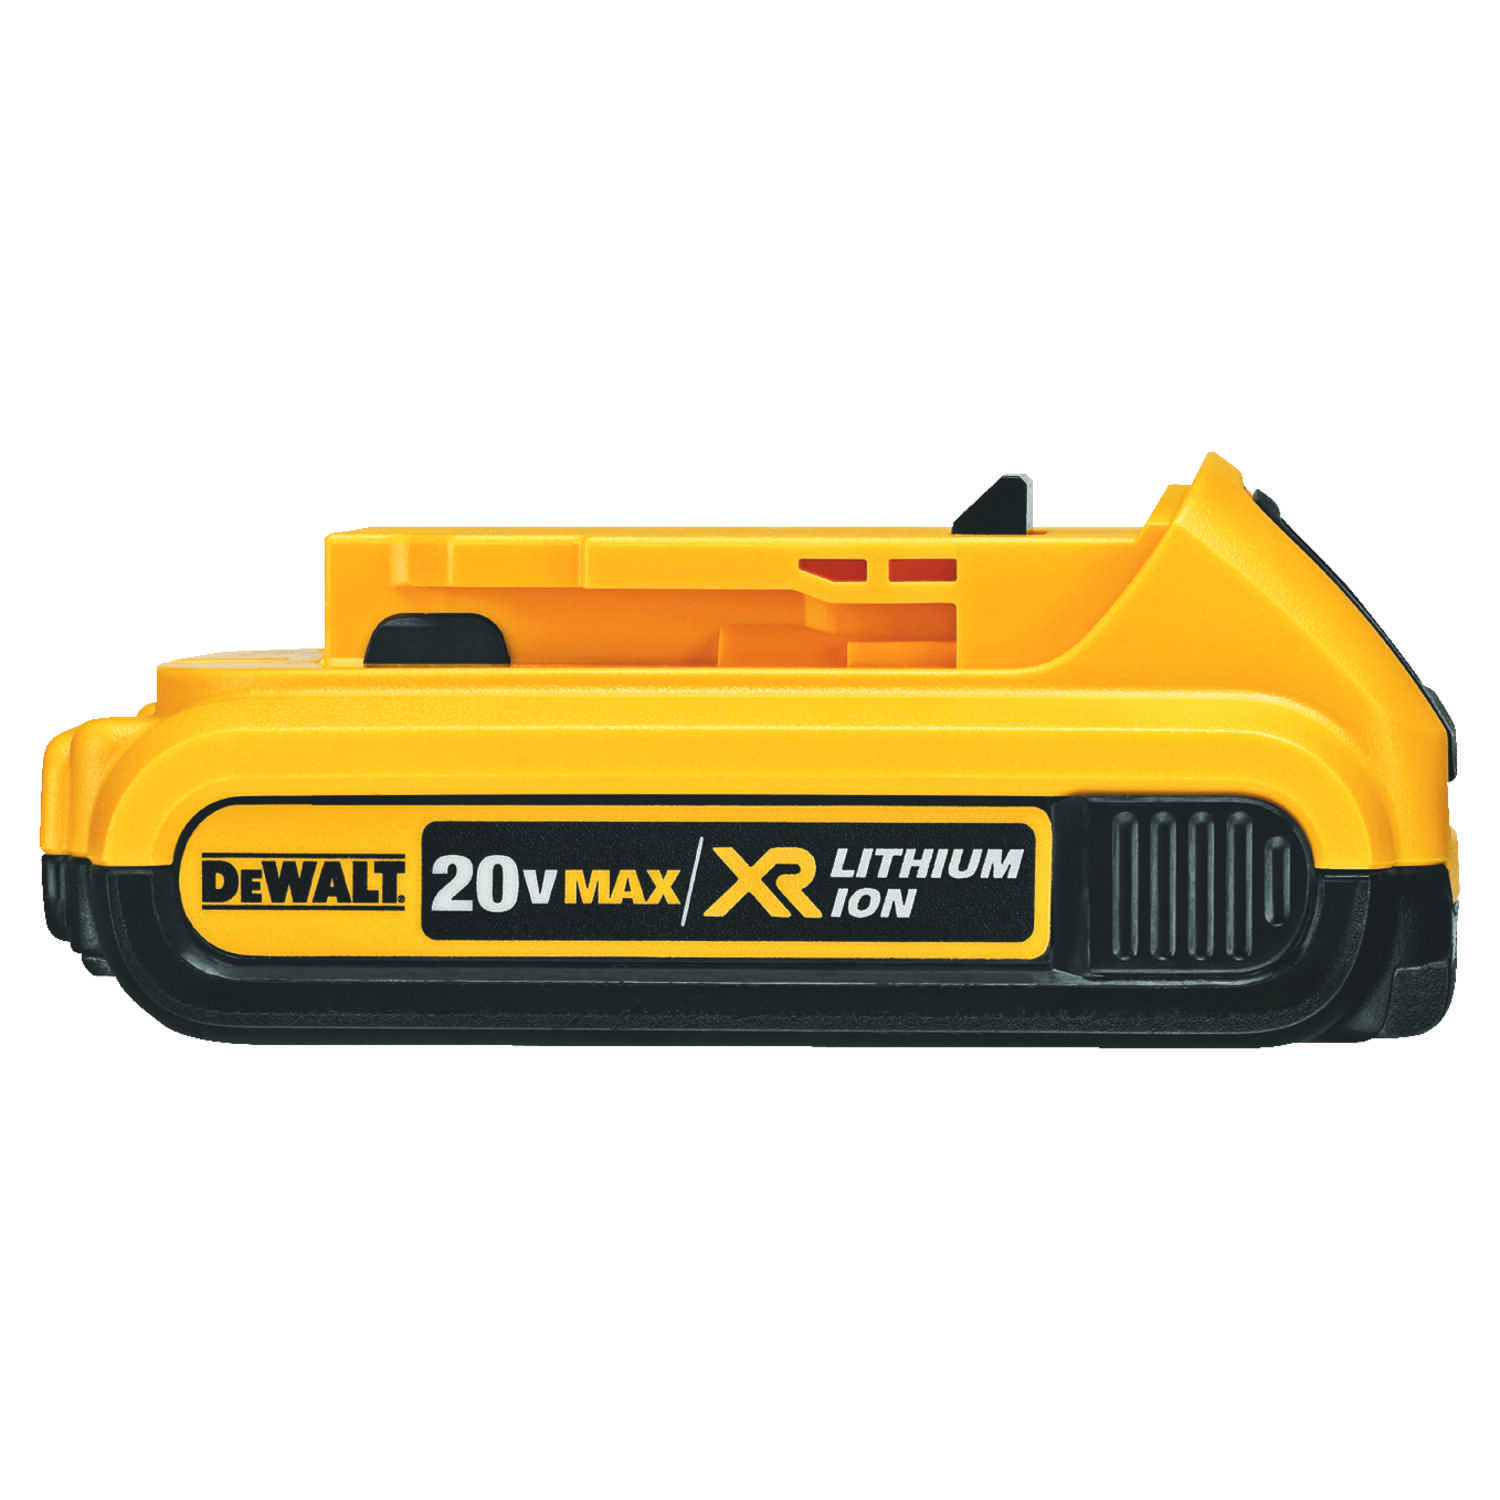 DeWalt  20V MAX XR  20 volt 2 Ah Lithium-Ion  Compact Battery Pack  1 pc.